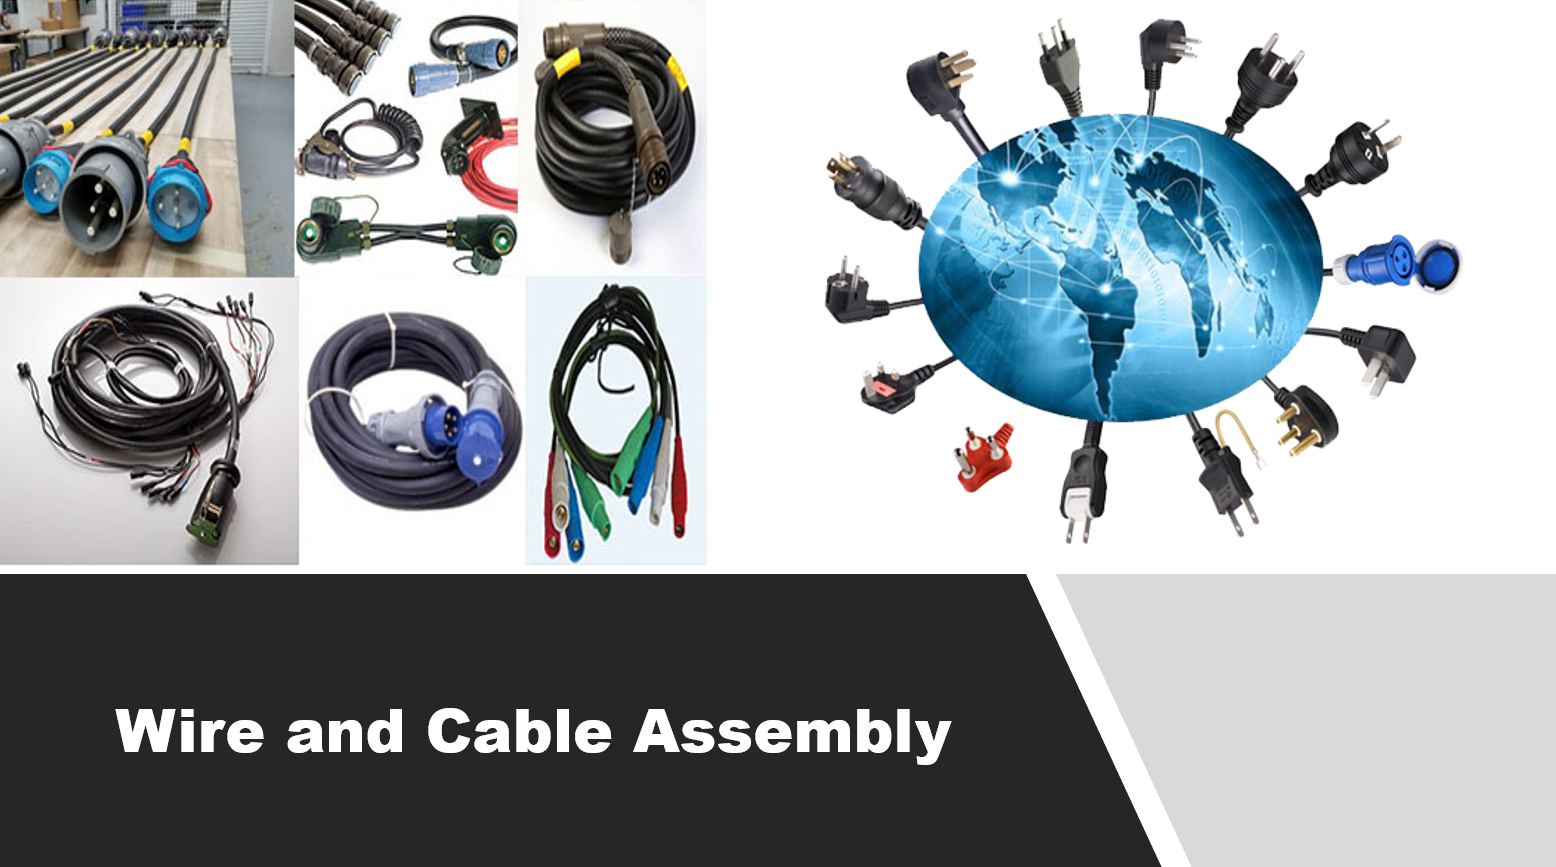 wire and cable assembly